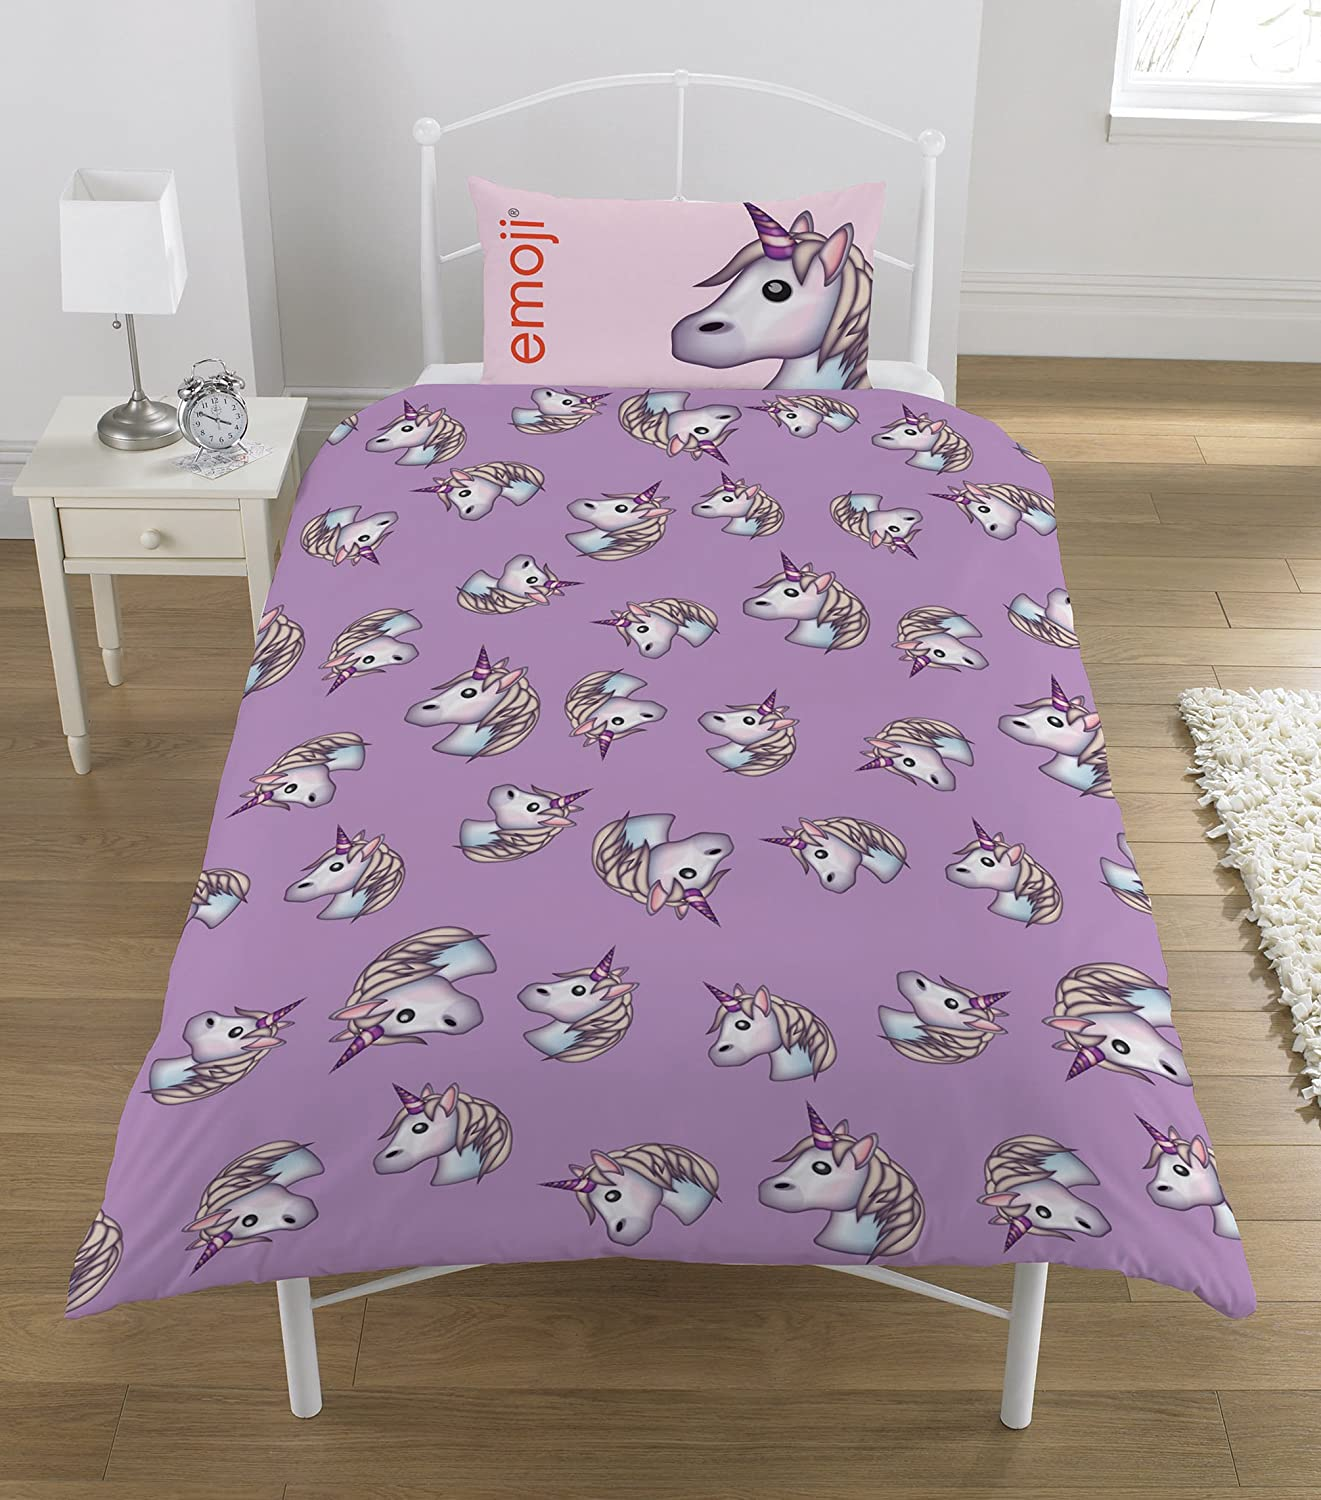 kitchen home pillowcase set dp us bed com cover single and unicorn duvet twin bedding magical amazon